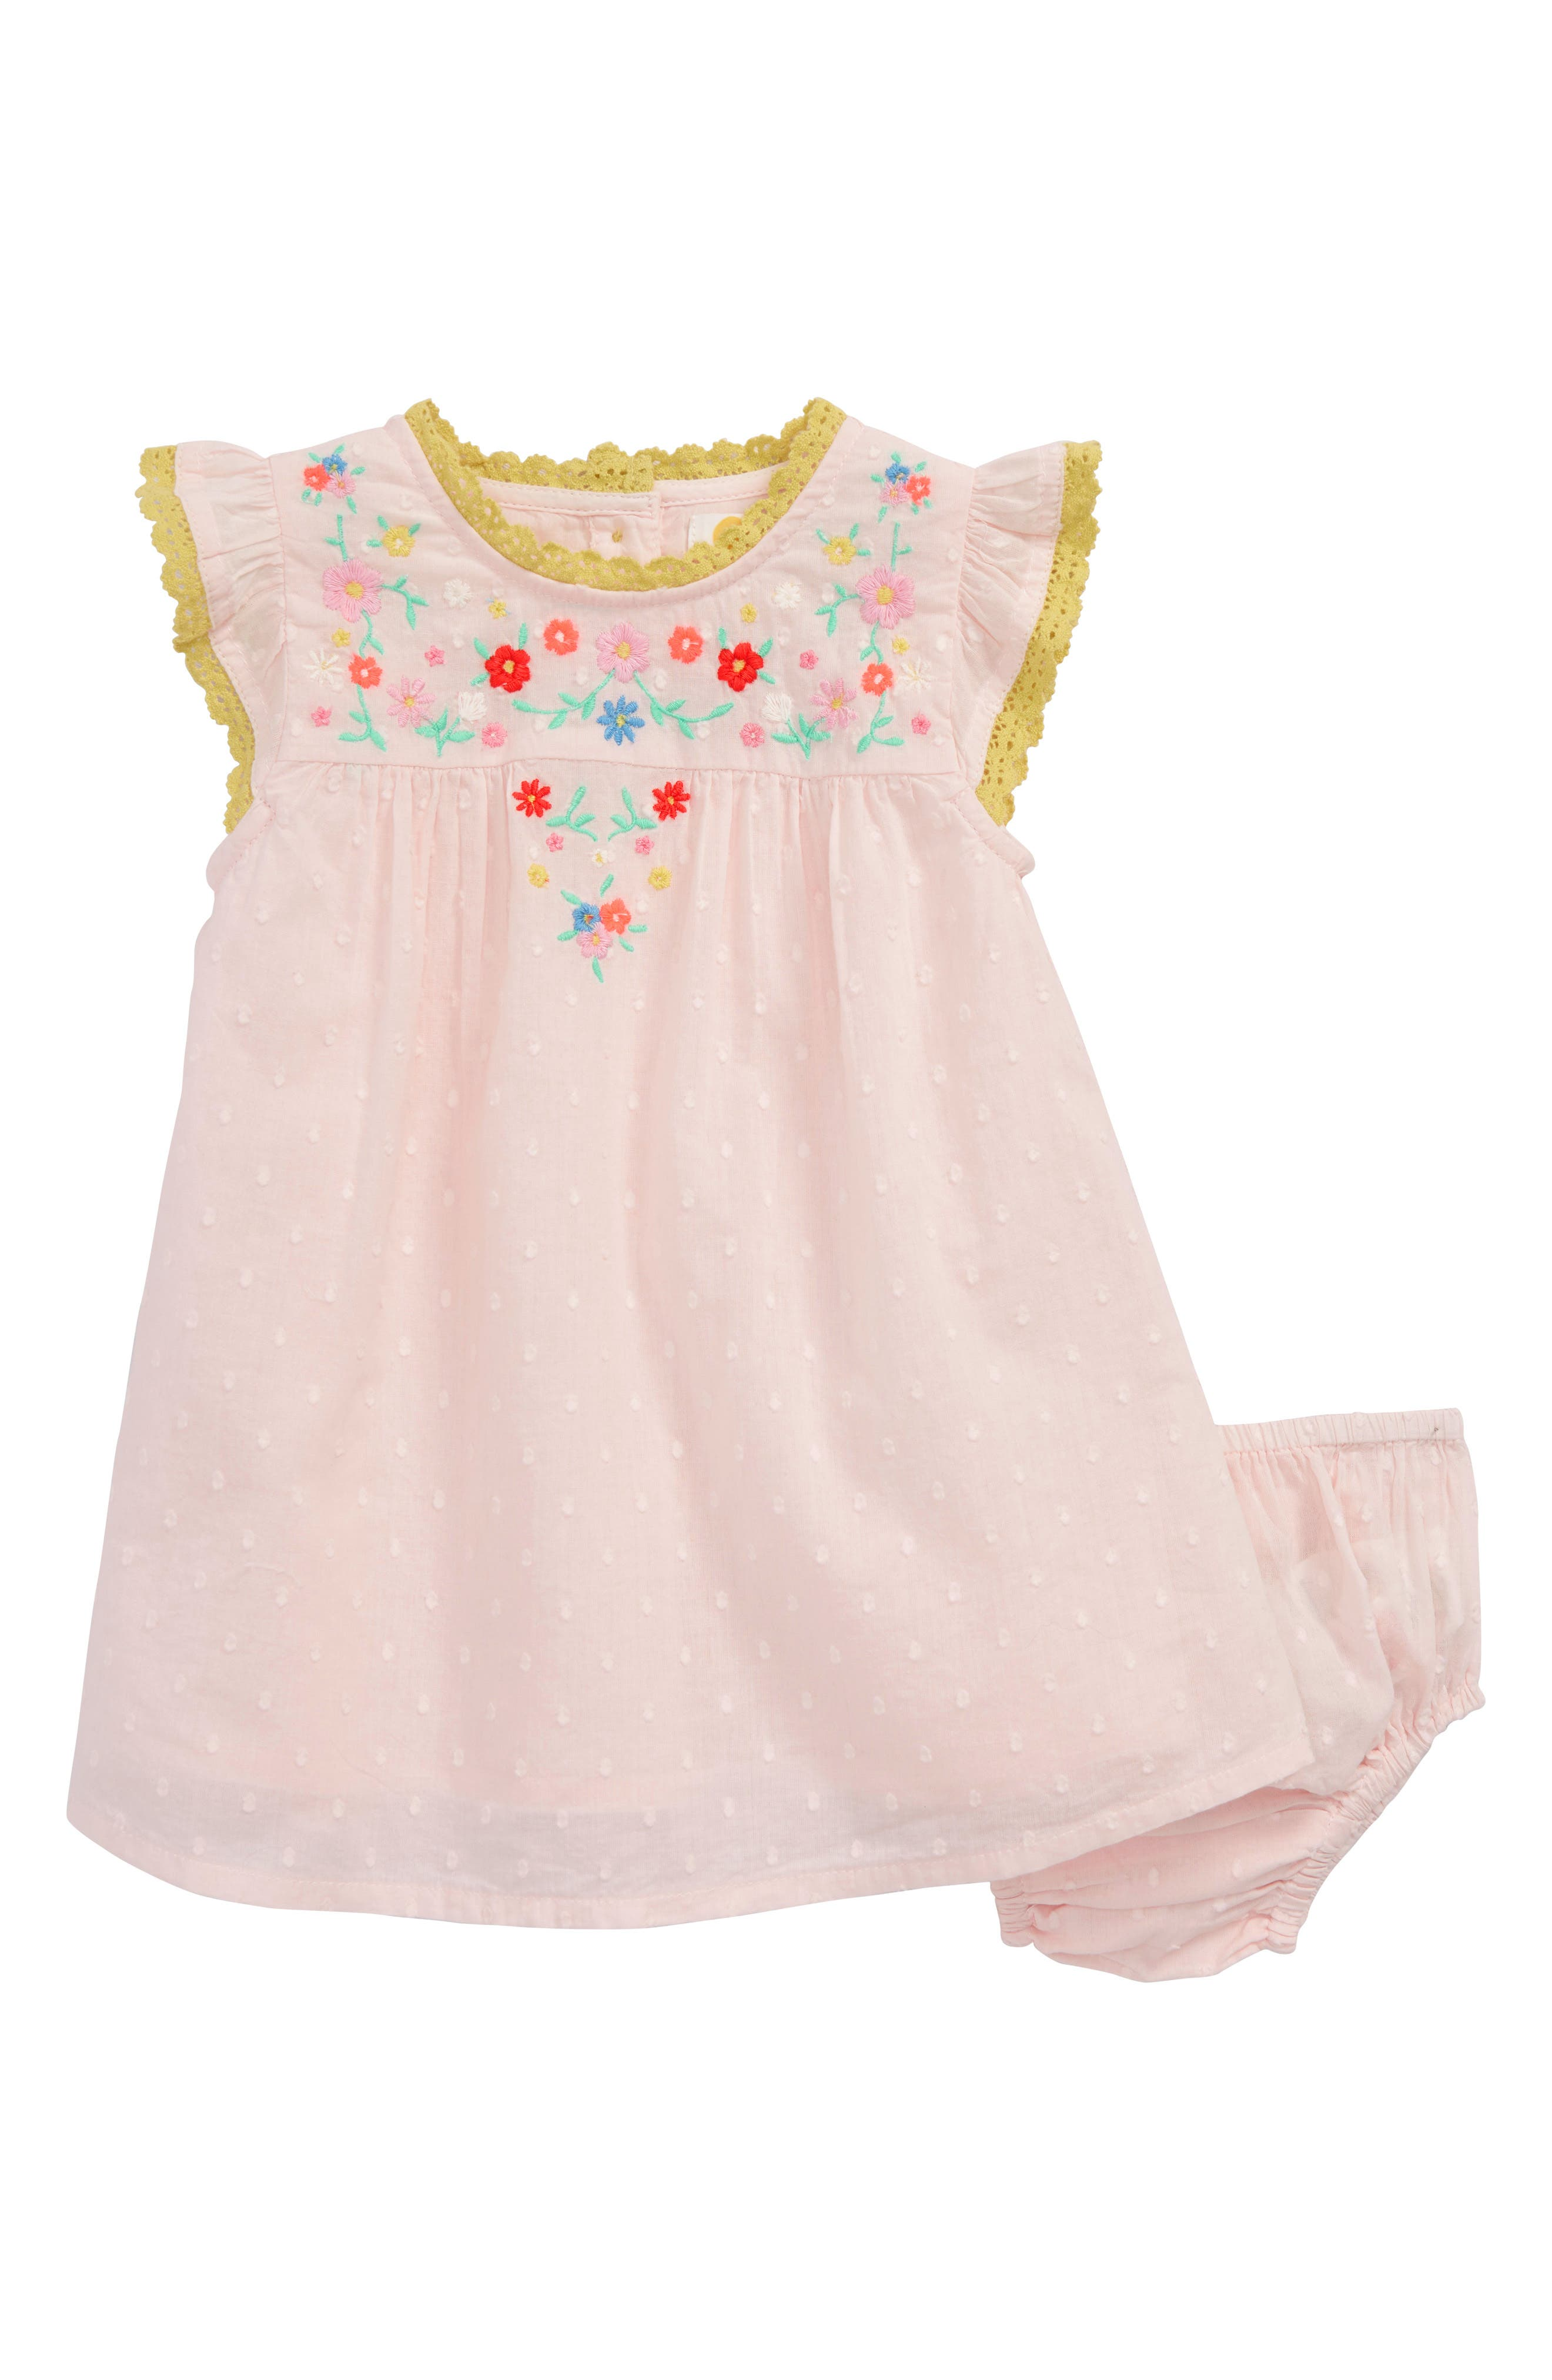 Pretty Frill Dress,                             Main thumbnail 1, color,                             Mist Pink Embroidery